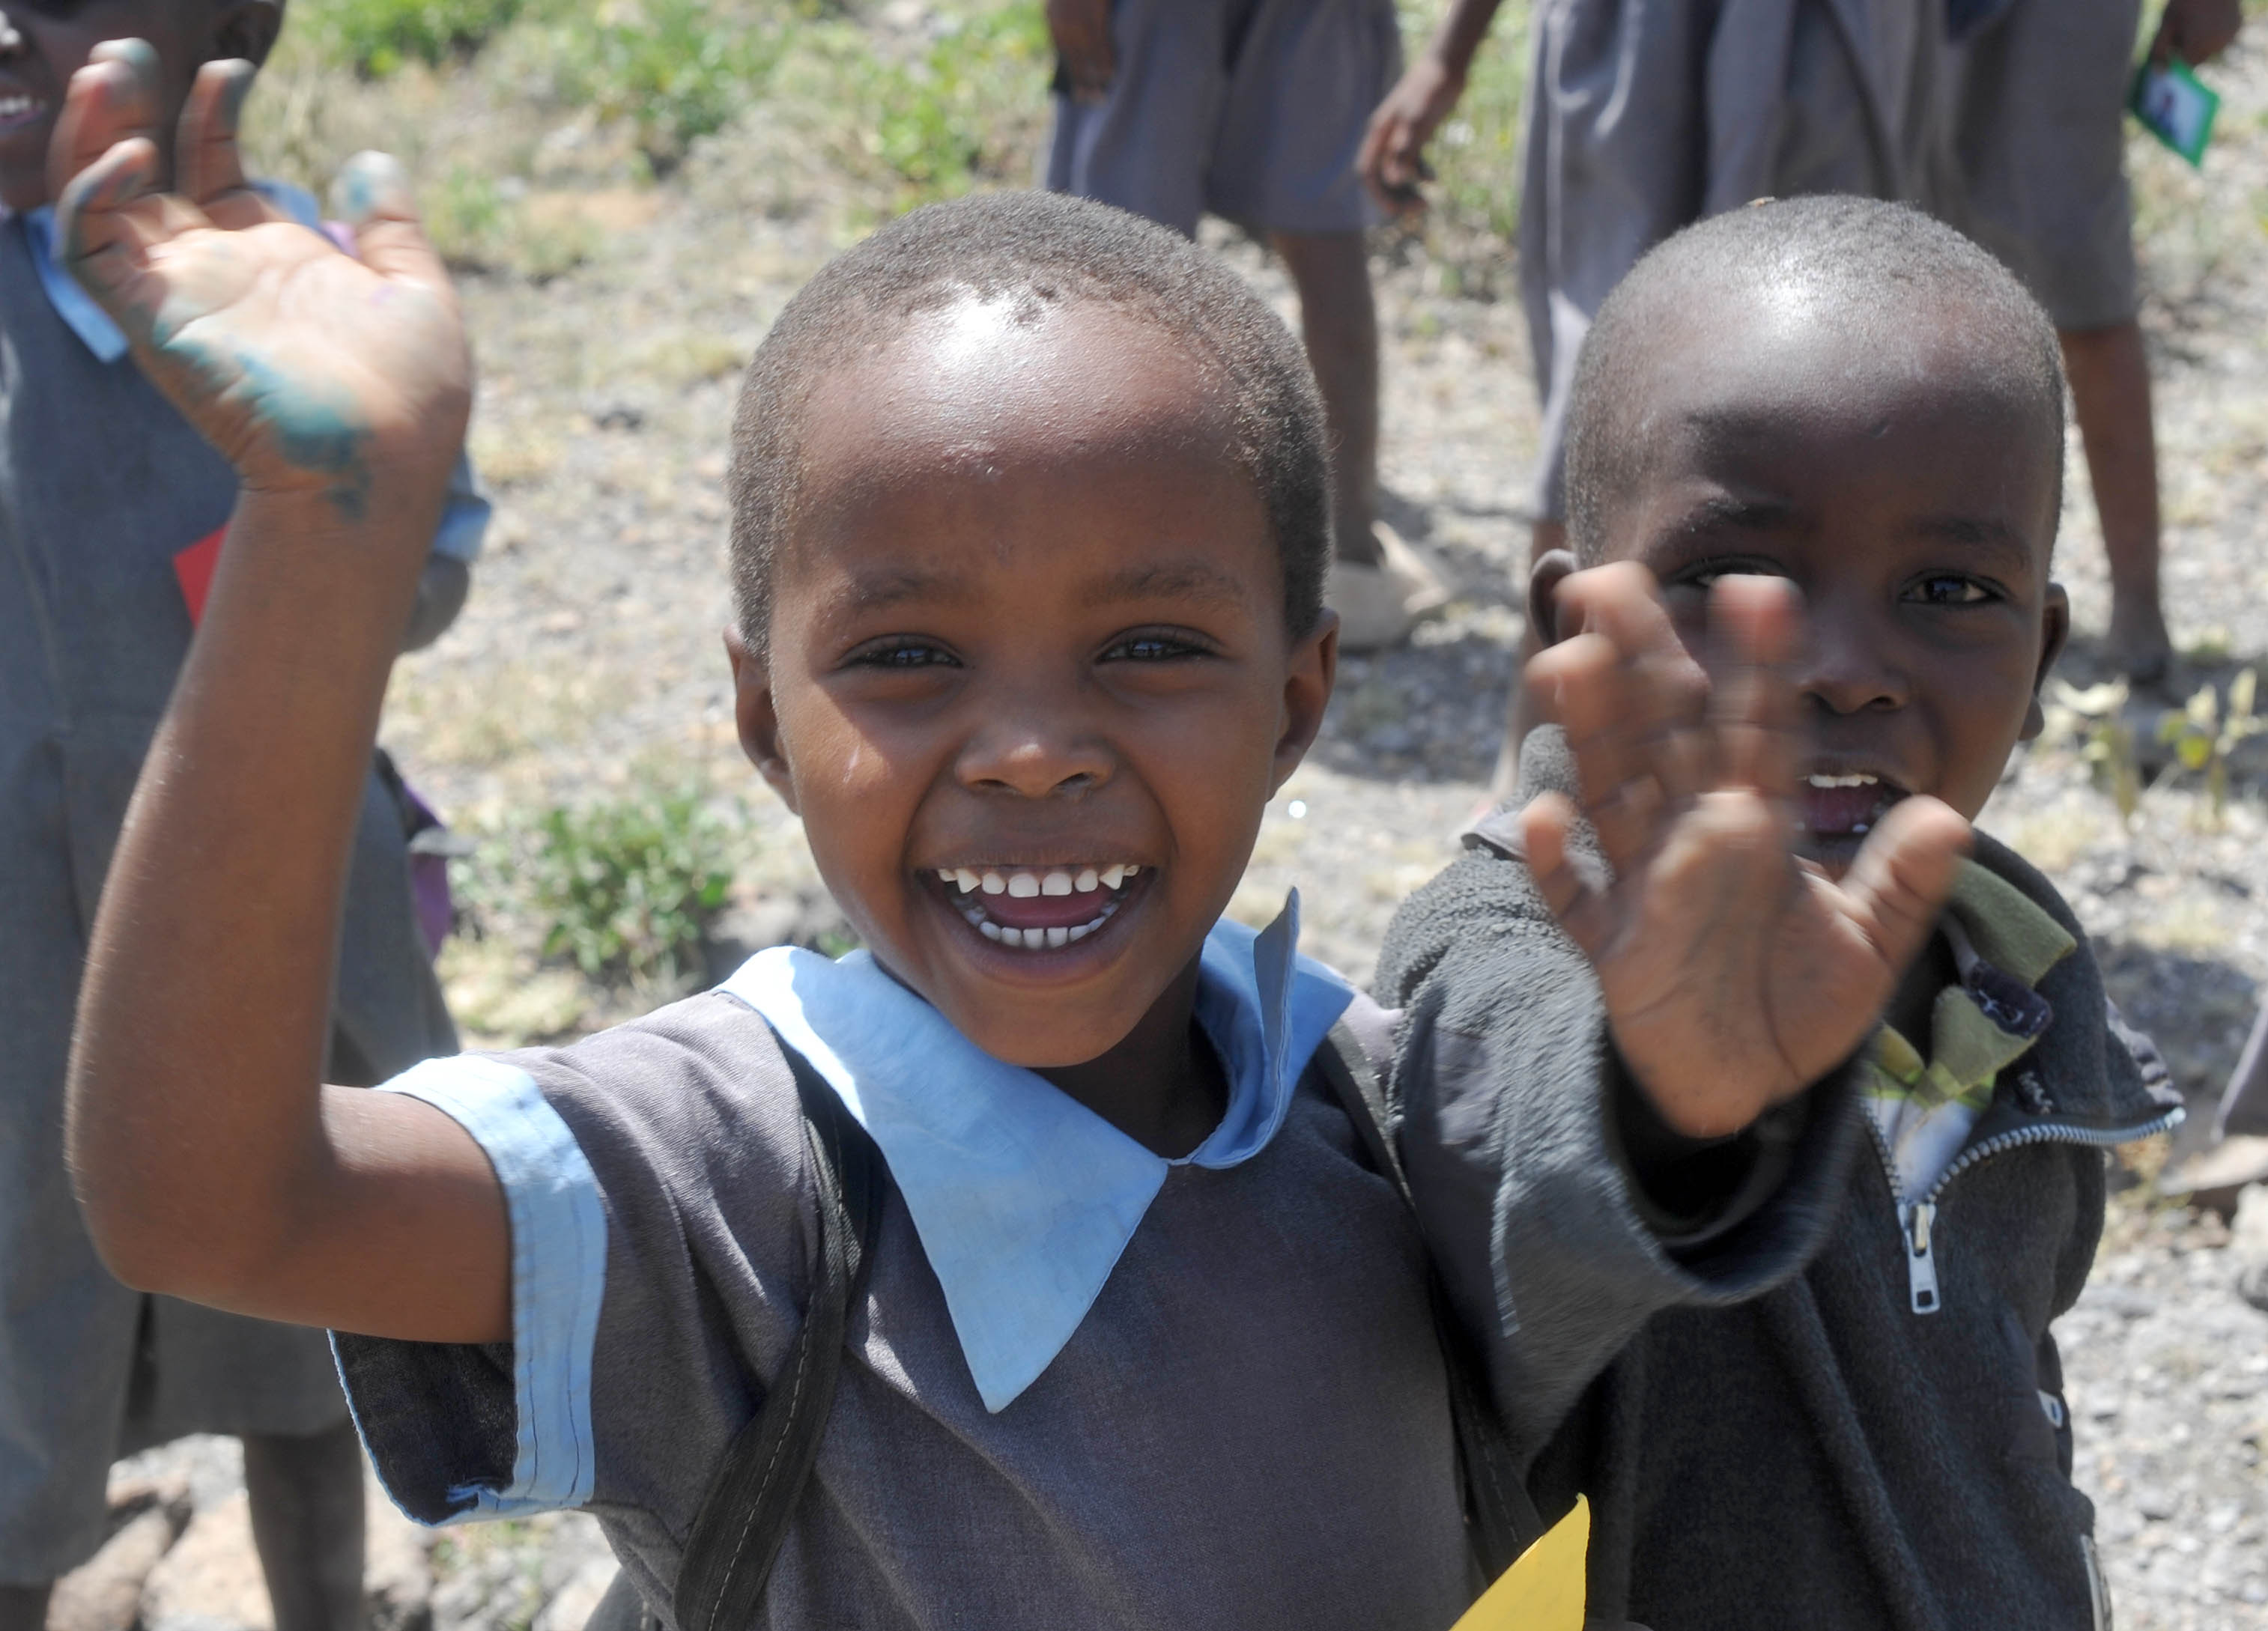 Greetings from the Maasai children